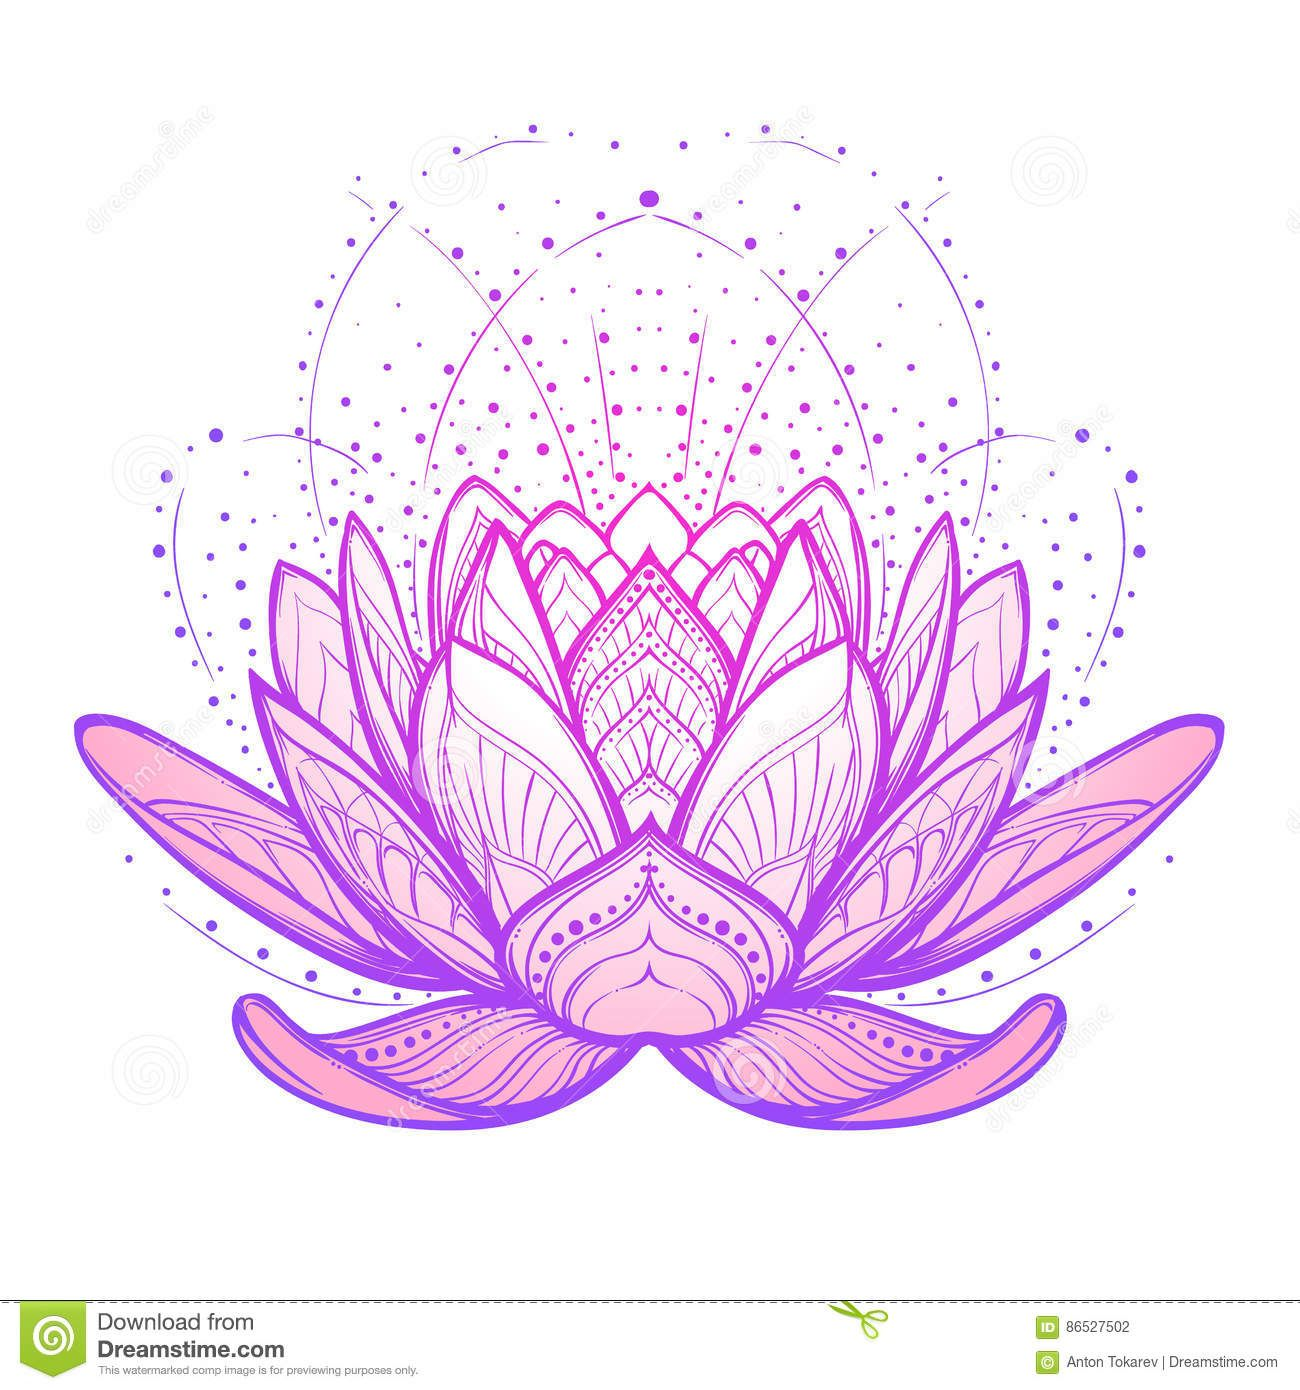 Pin by Ashley Bahr on Tattoo ideas Lotus flower drawing